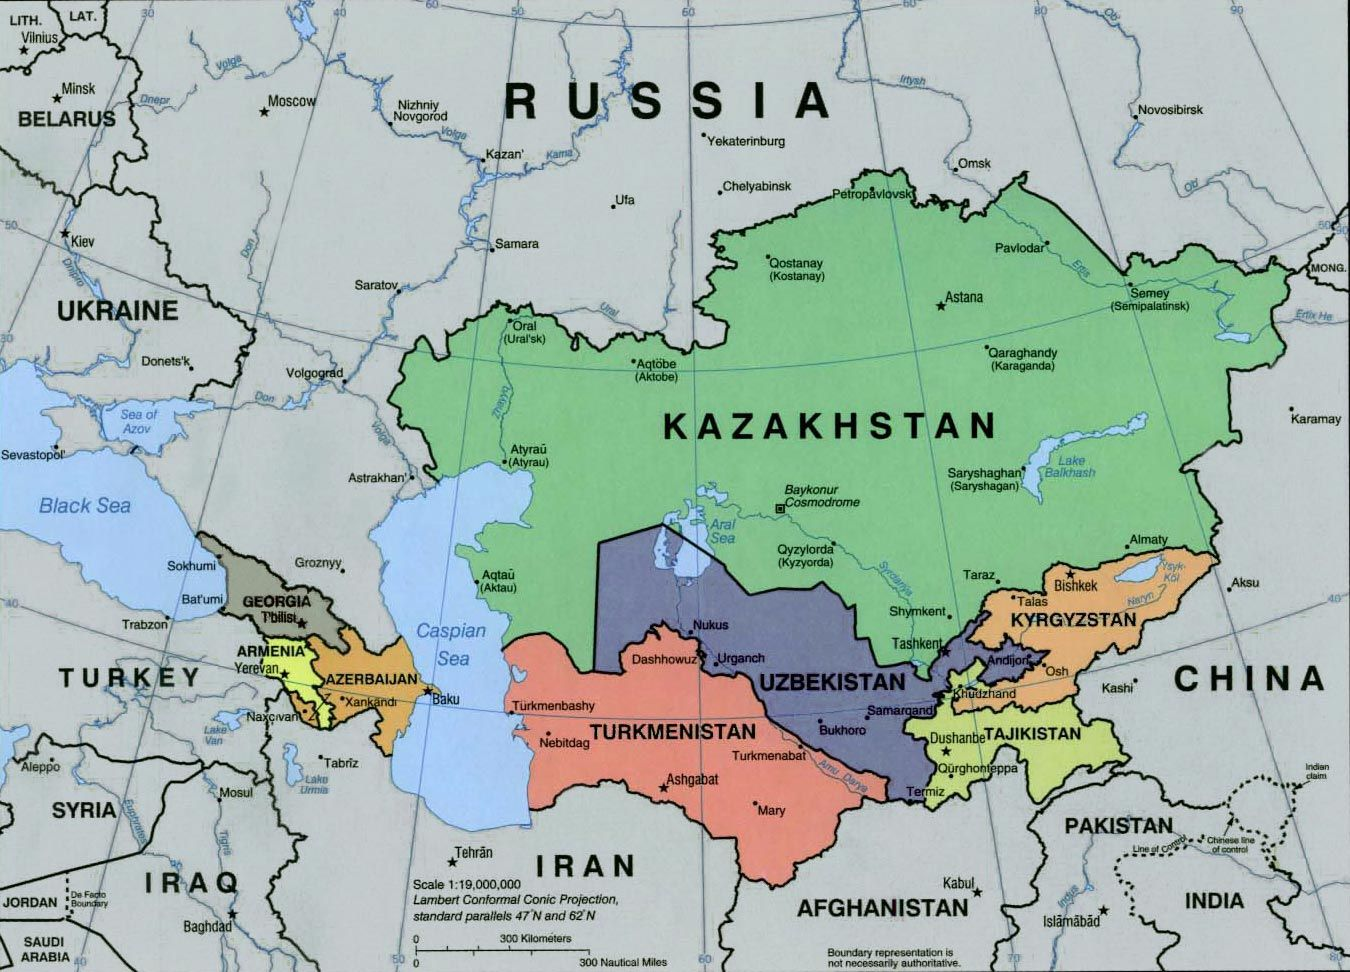 the stans Central Asia